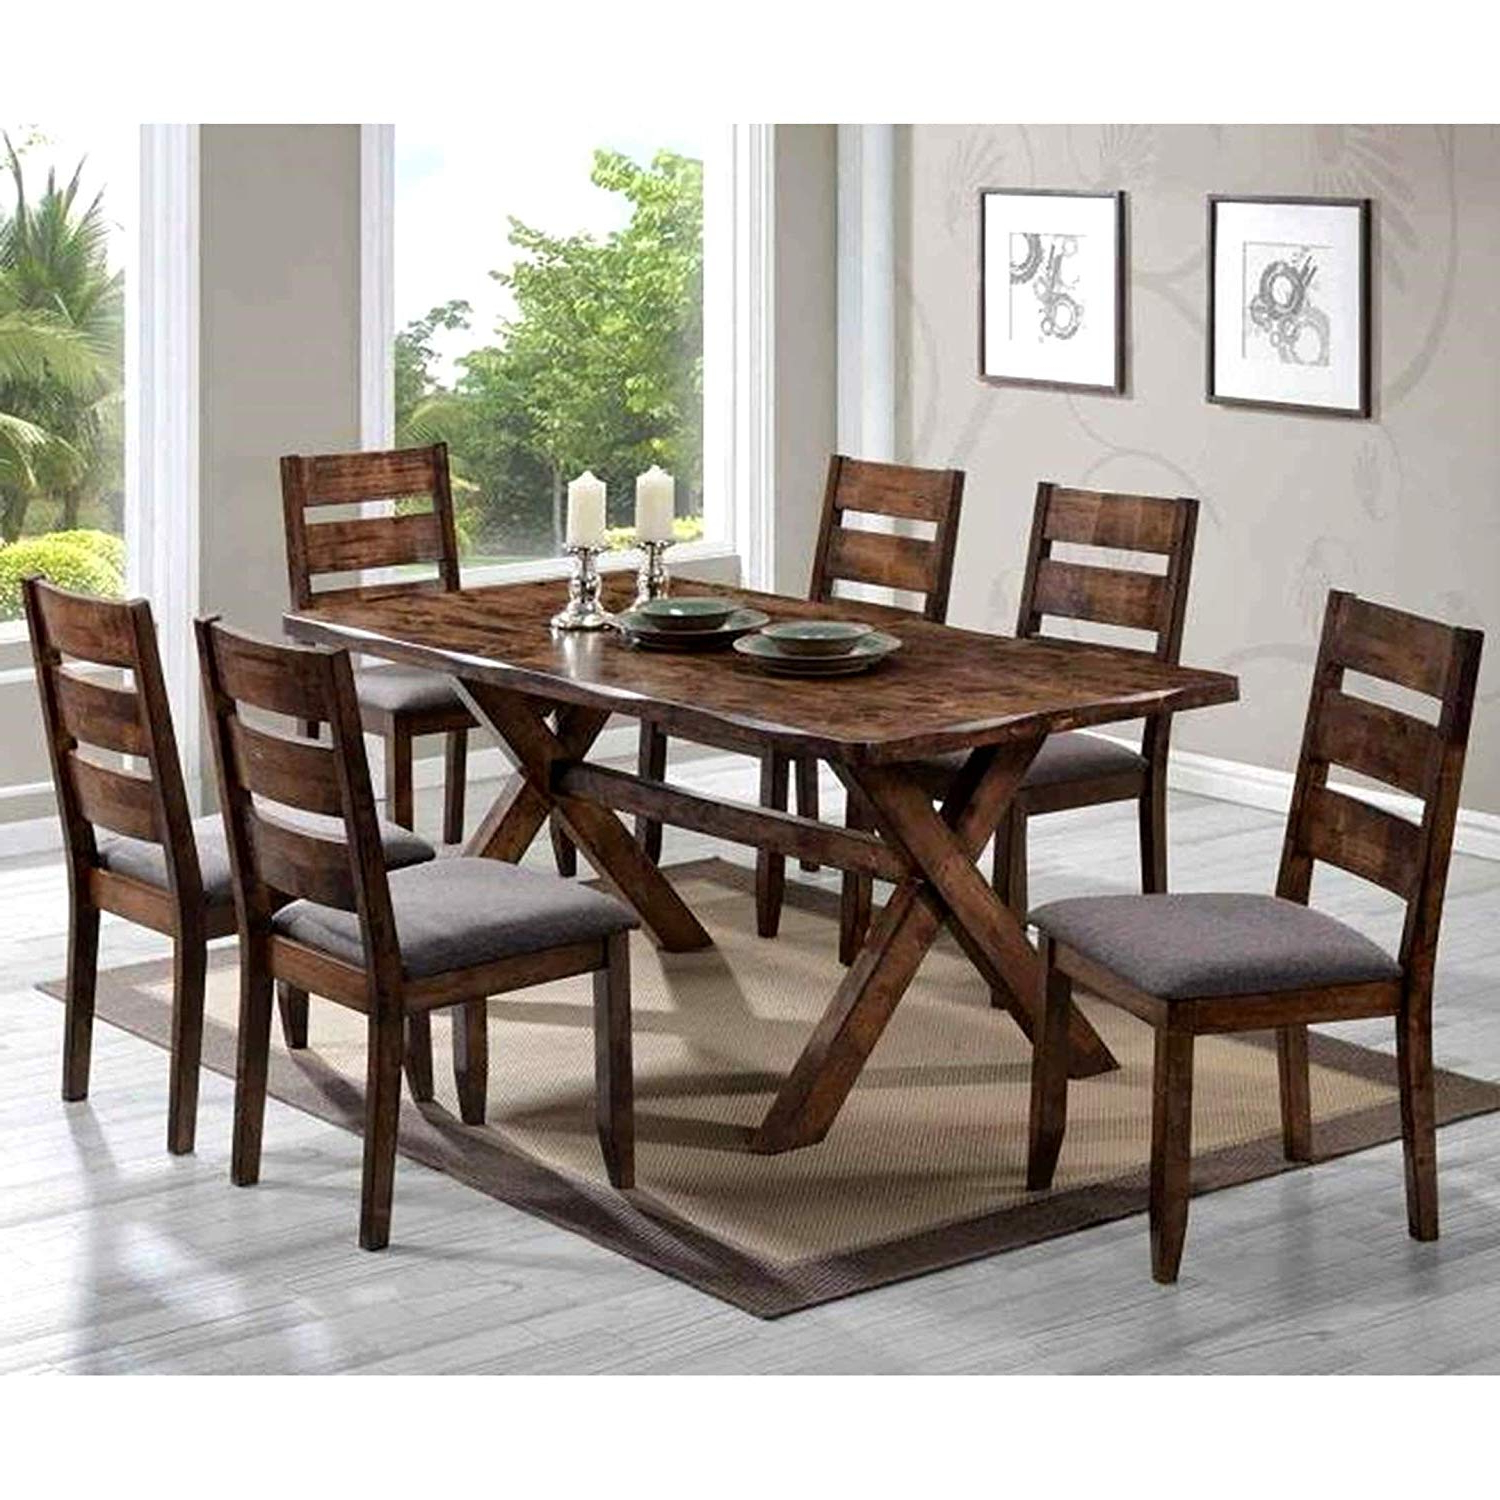 Small Rustic Look Dining Tables With Regard To Newest Amazon – A Line Furniture Milano Rustic Knotty Shaped (View 11 of 25)